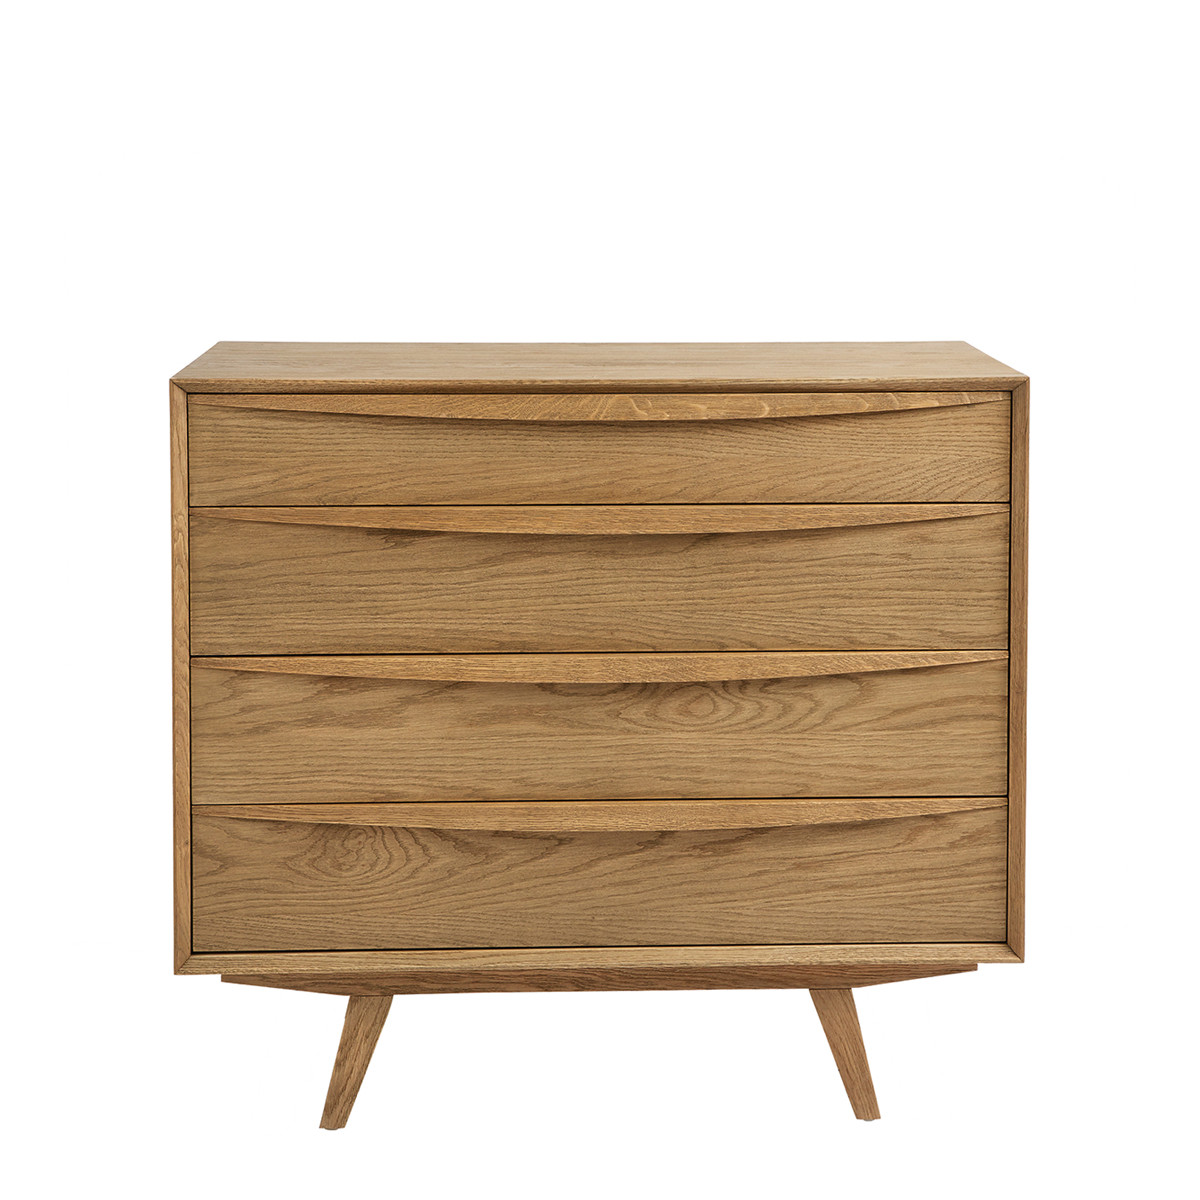 MELINA CHEST OF DRAWERS